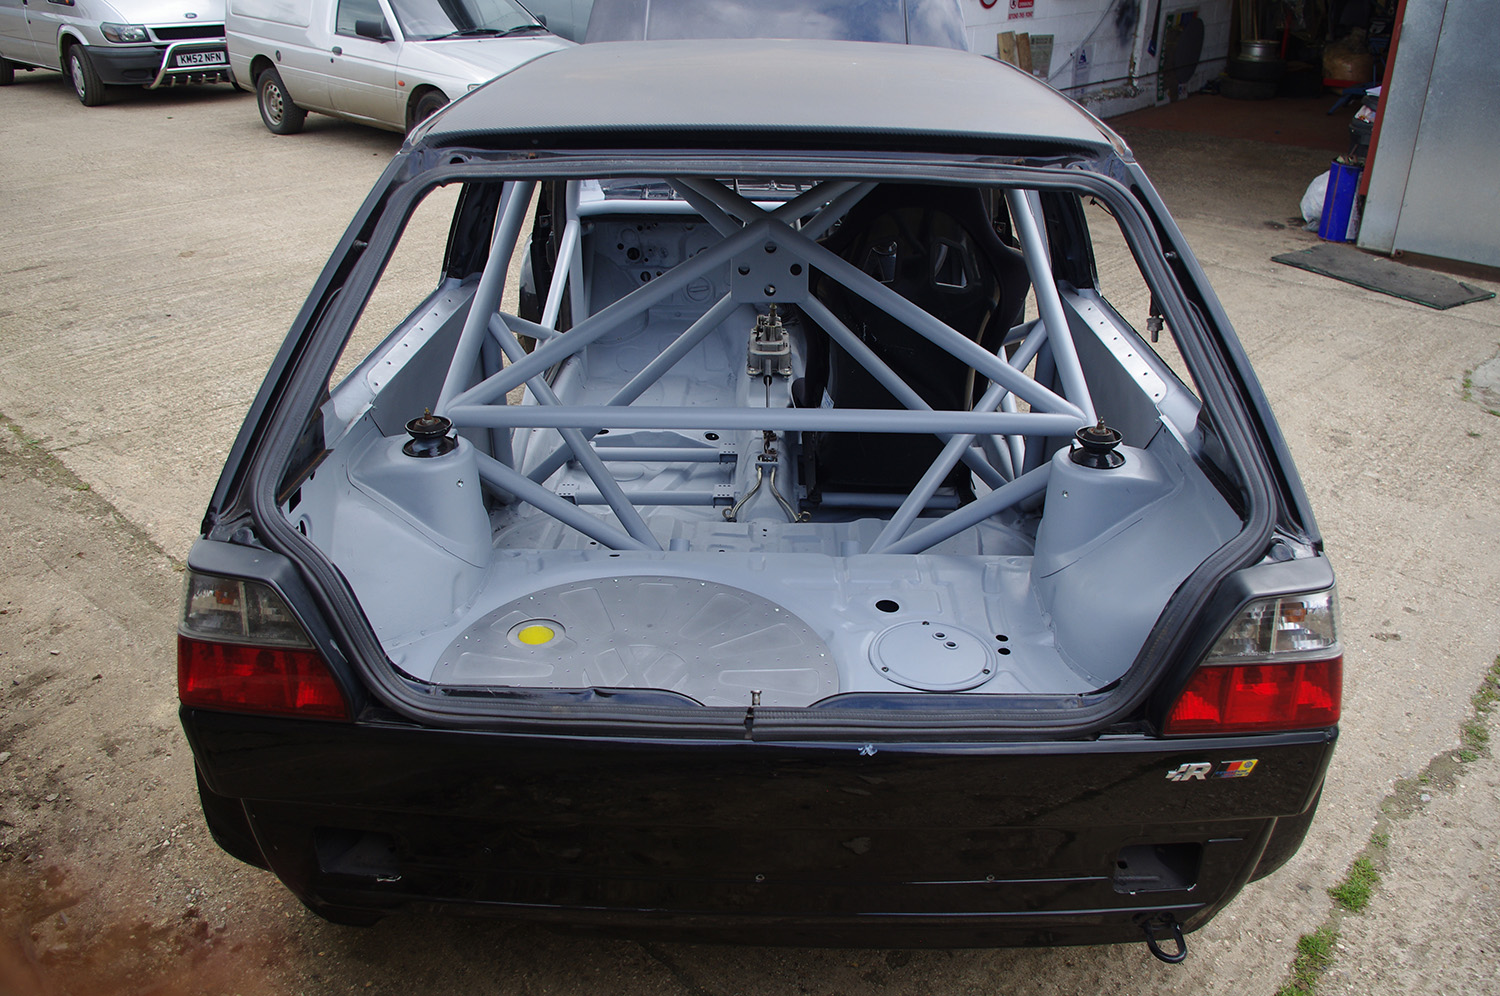 MATTHEW MCCONACHIE MK2 GOLF 650hp 4WD GOLF RACECAR BUILD - LEWIS BUILT 2014 (19)